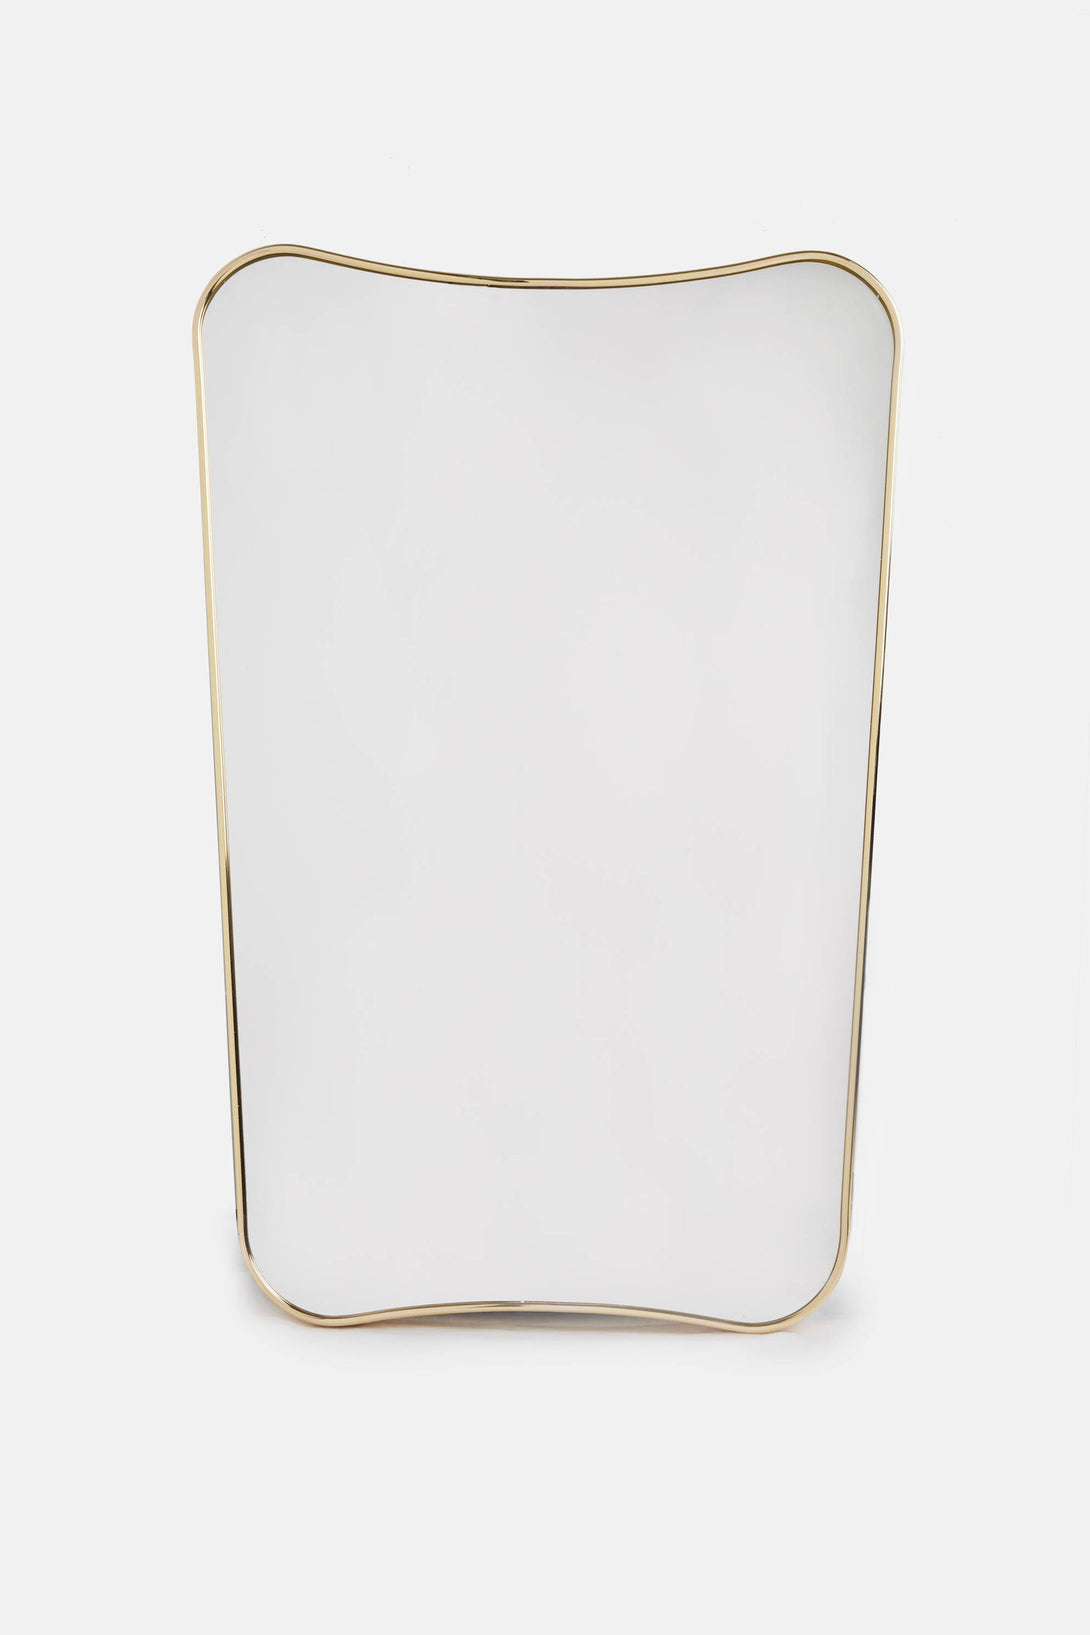 F.A. 33 Half-Length Wall Mirror by Gio Ponti